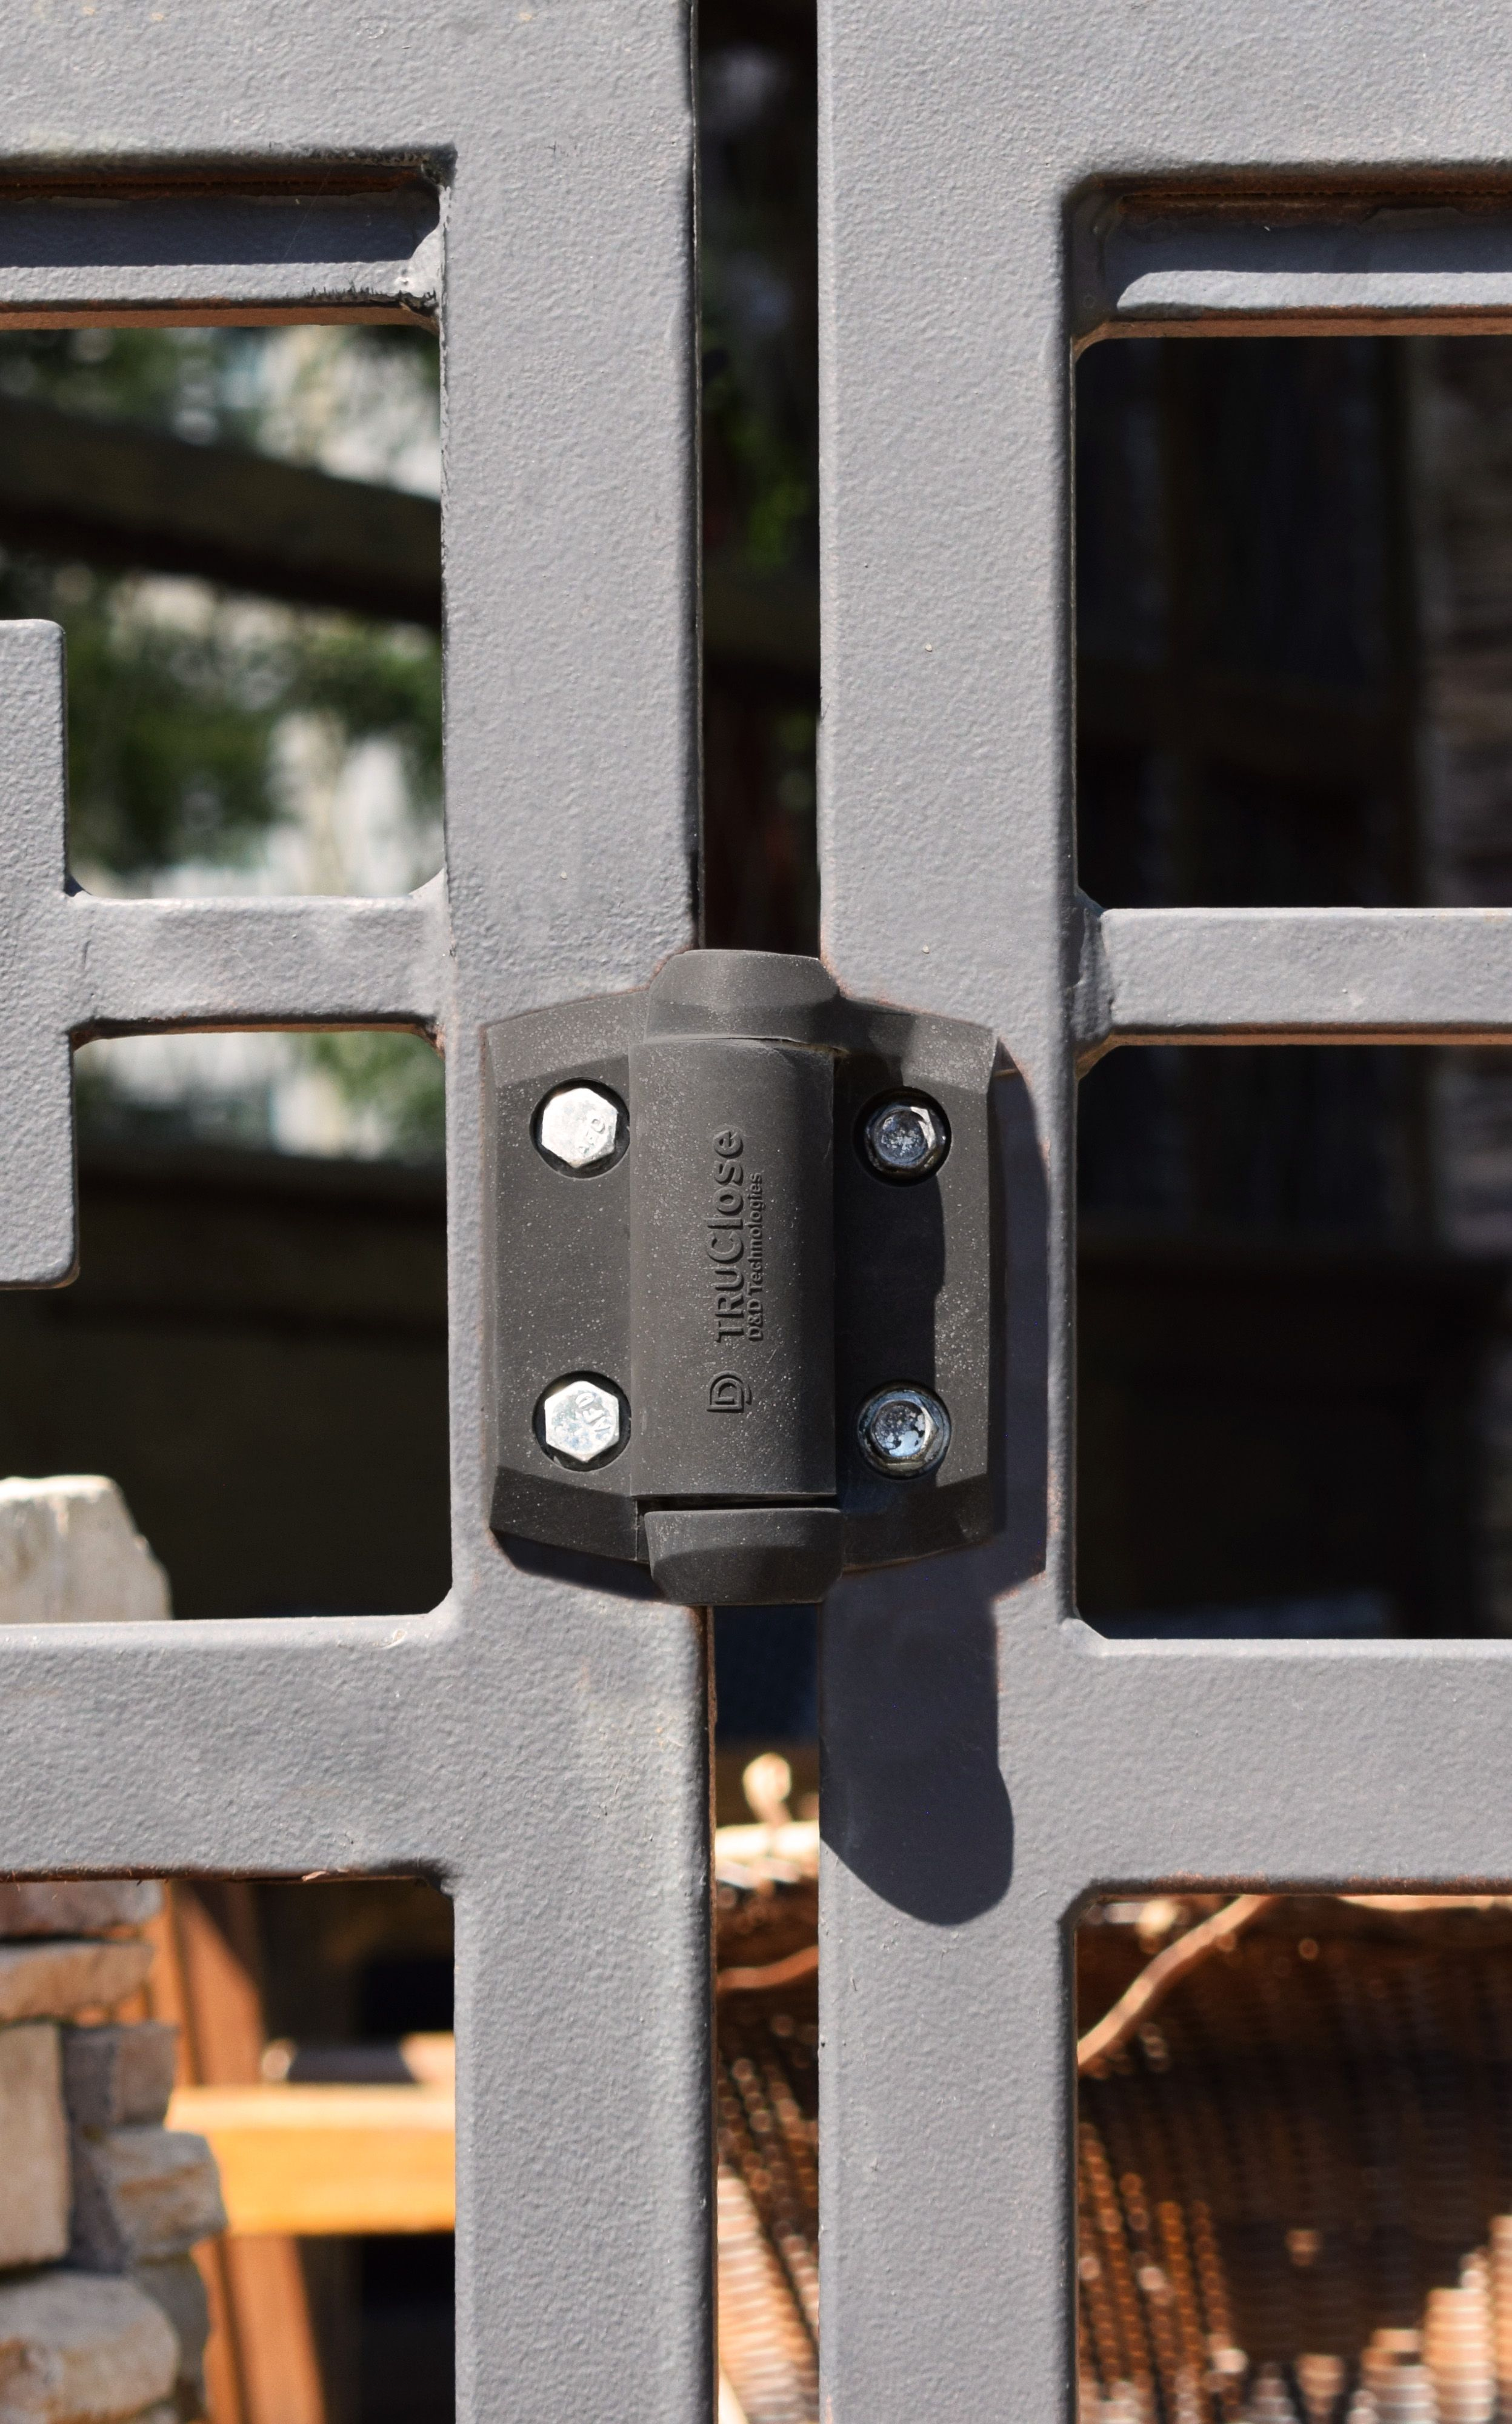 D D Truclose Hinge 21 Tchd1 L2 In 2020 Heavy Duty Hinges Hinges Metal Working